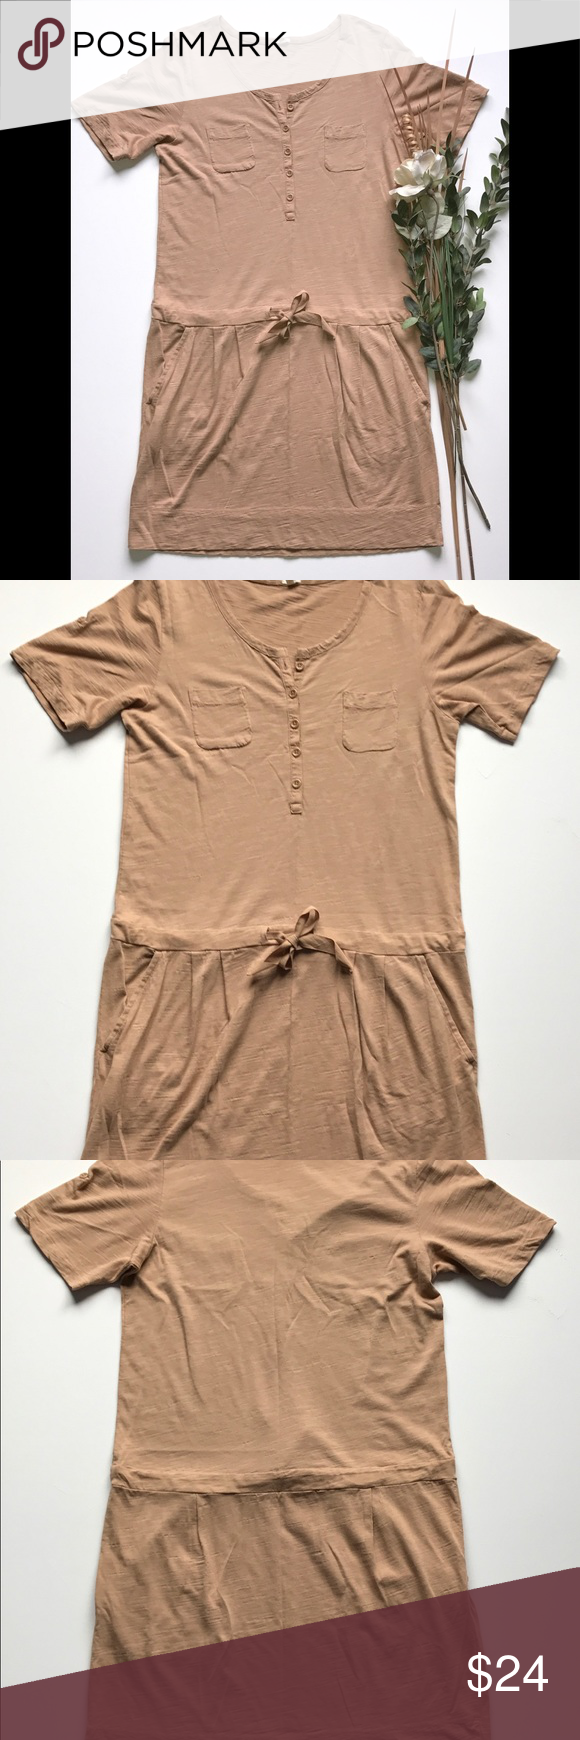 J crew tshirt dress arm pits camels and short sleeves